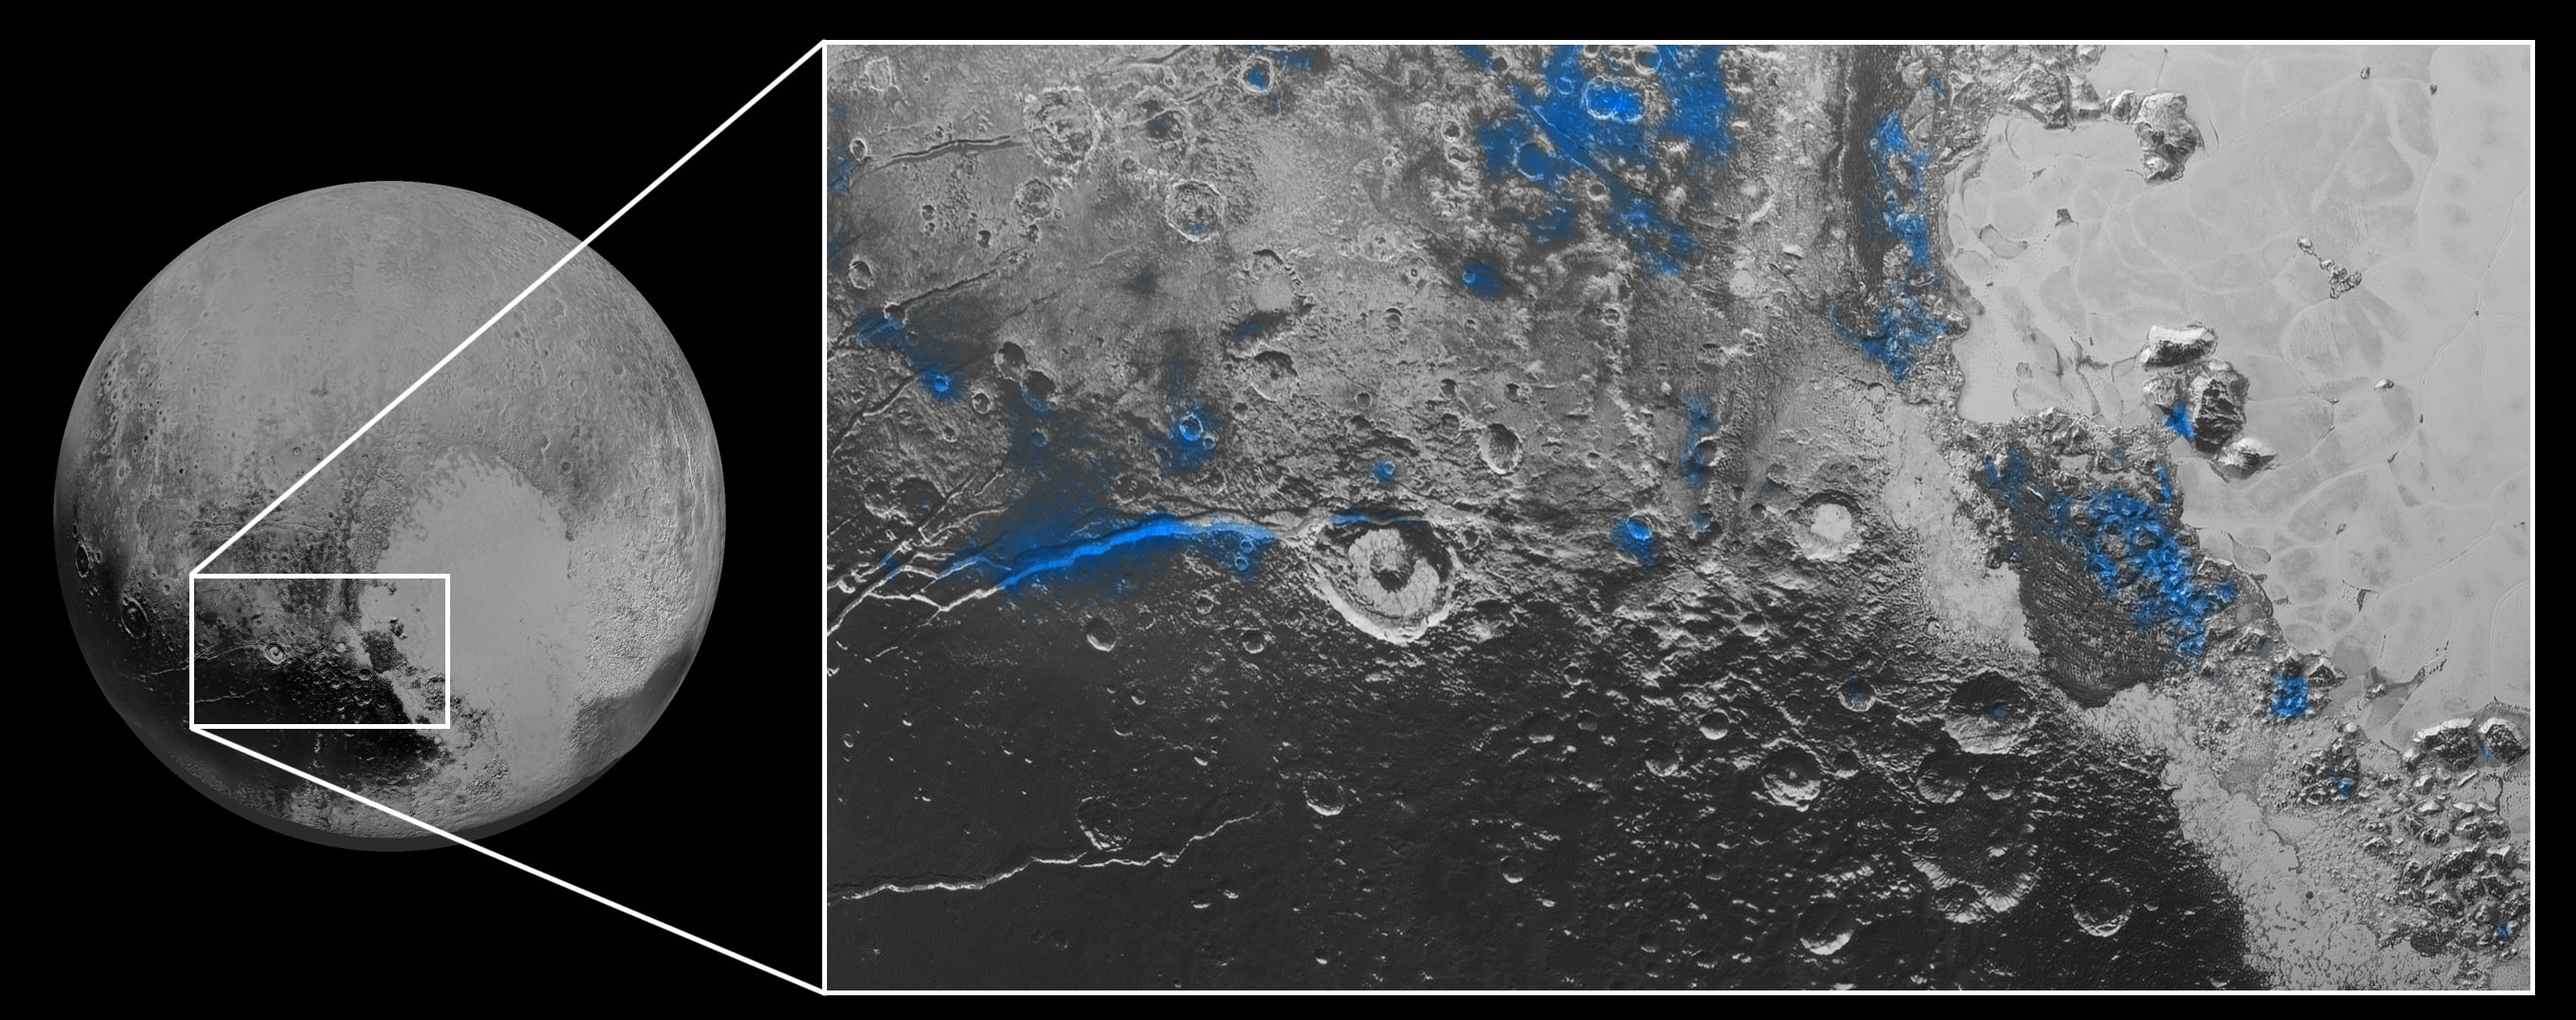 Water Ice on Pluto: Regions with exposed water ice are highlighted in blue in this composite image from New Horizons' Ralph instrument, combining visible imagery from the Multispectral Visible Imaging Camera (MVIC) with infrared spectroscopy from the Linear Etalon Imaging Spectral Array (LEISA). The strongest signatures of water ice occur along Virgil Fossa, just west of Elliot crater on the left side of the inset image, and also in Viking Terra near the top of the frame. A major outcrop also occurs in Baré Montes towards the right of the image, along with numerous much smaller outcrops, mostly associated with impact craters and valleys between mountains. The scene is approximately 280 miles (450 kilometers) across. Note that all surface feature names are informal.  Credits: NASA/JHUAPL/SwRI